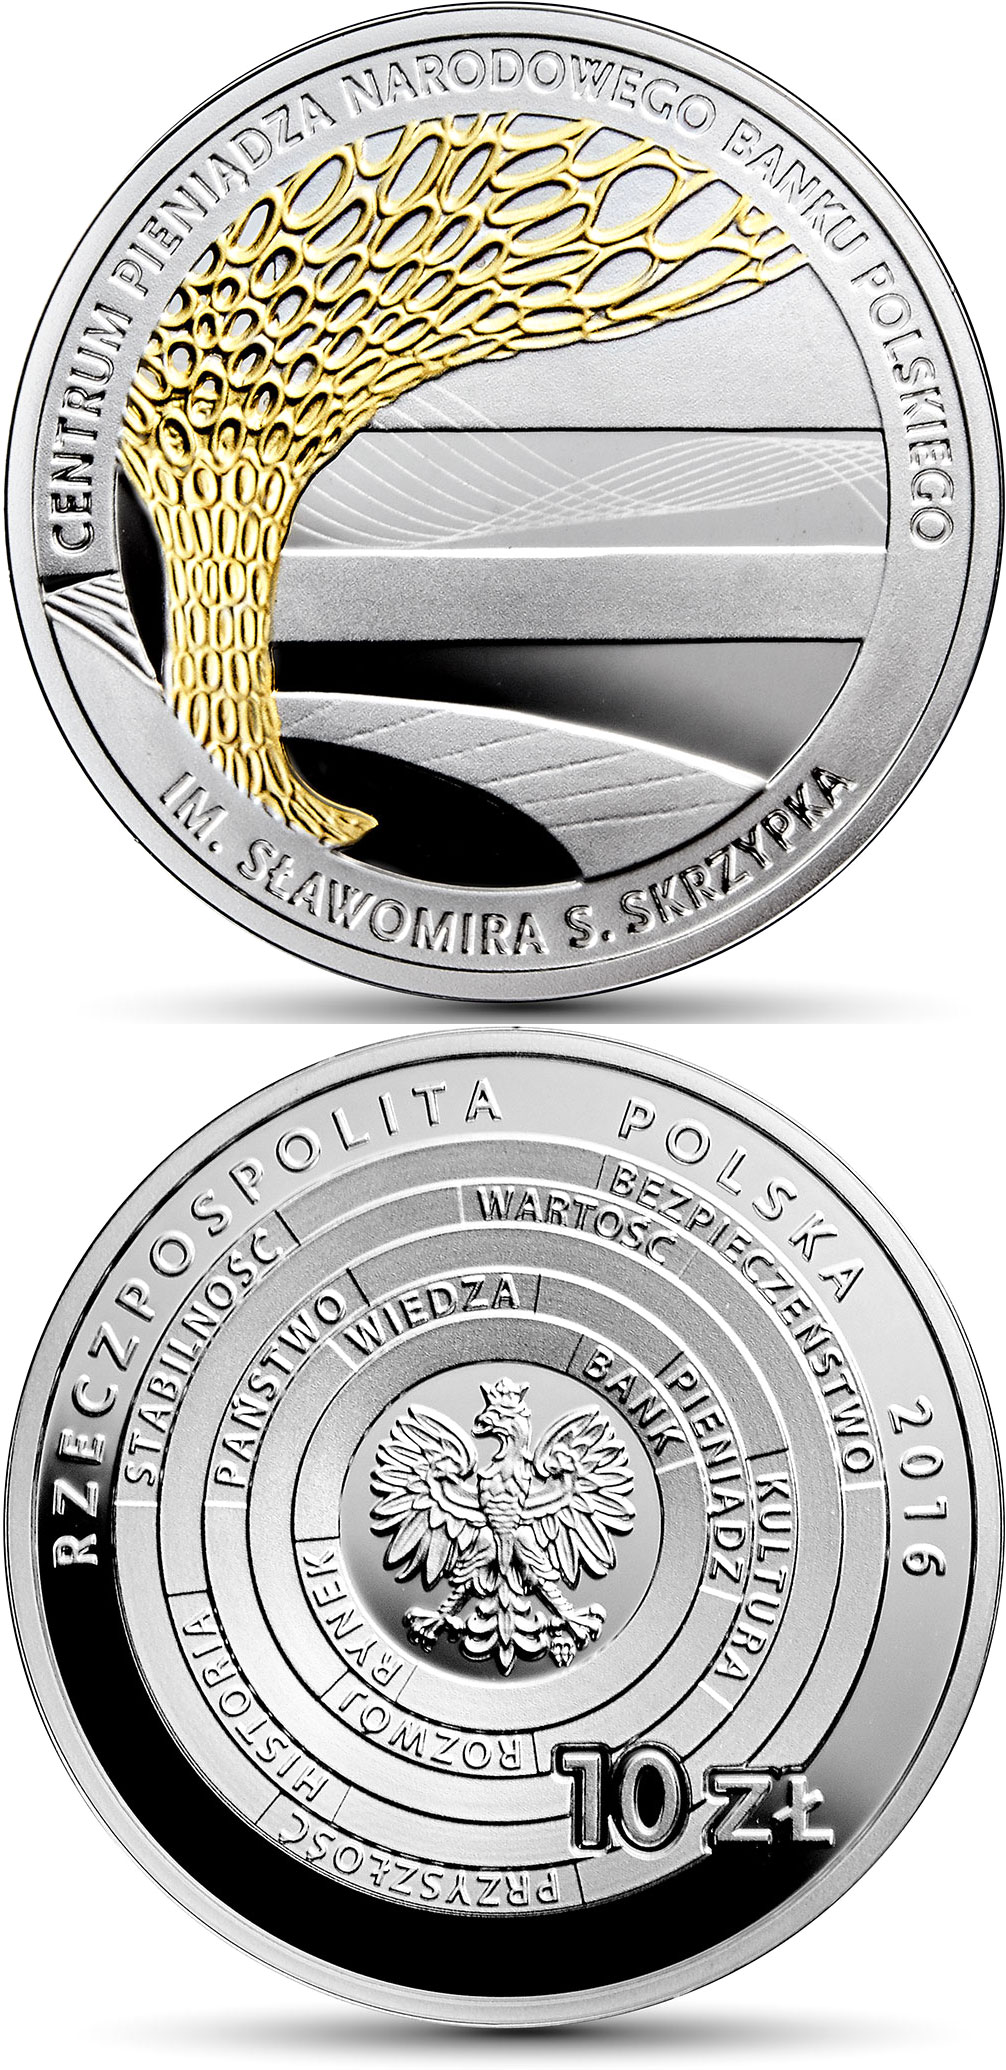 Image of NBP Money Centre in memory of Sławomir S. Skrzypek  – 10 zloty coin Poland 2016.  The Silver coin is of Proof quality.